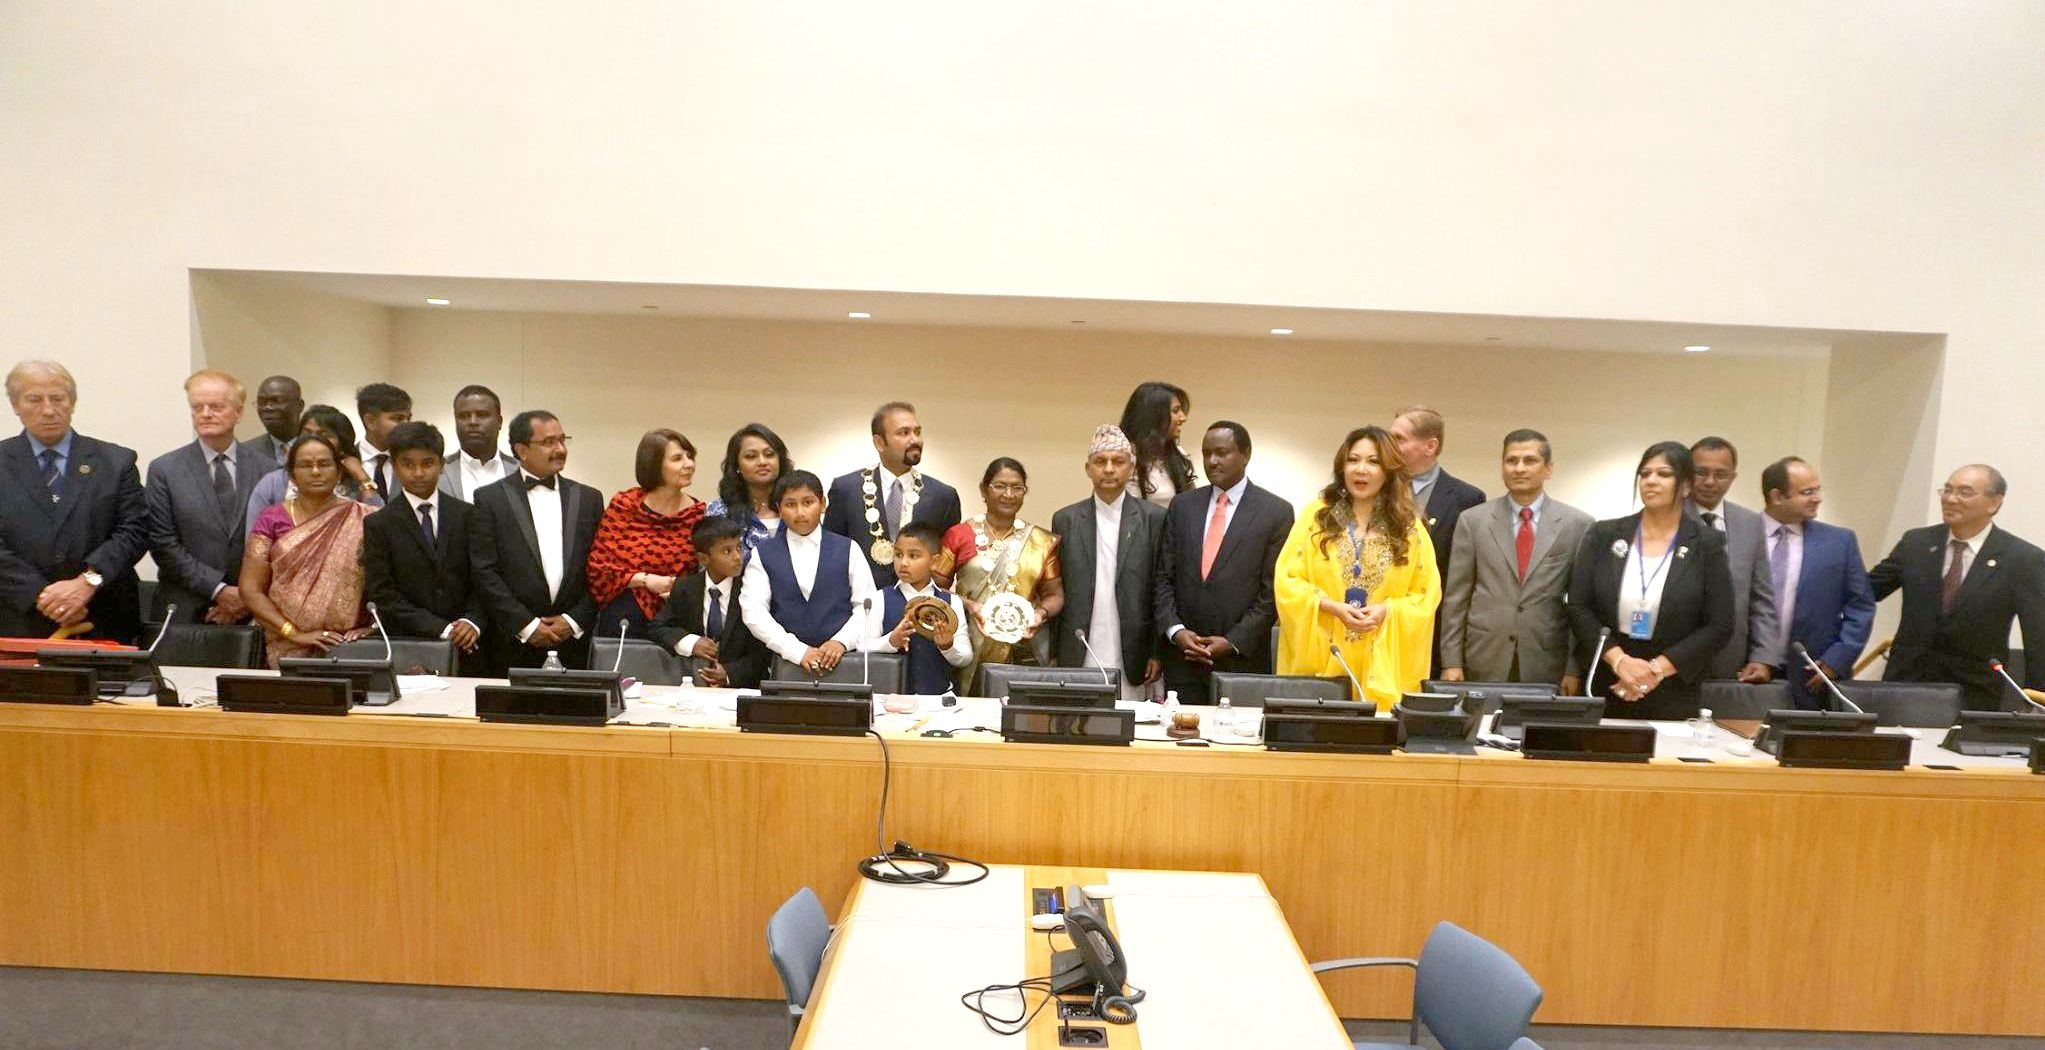 World Leaders and Royalty at the Triumphant 4th GOD Awards United Nations, NY